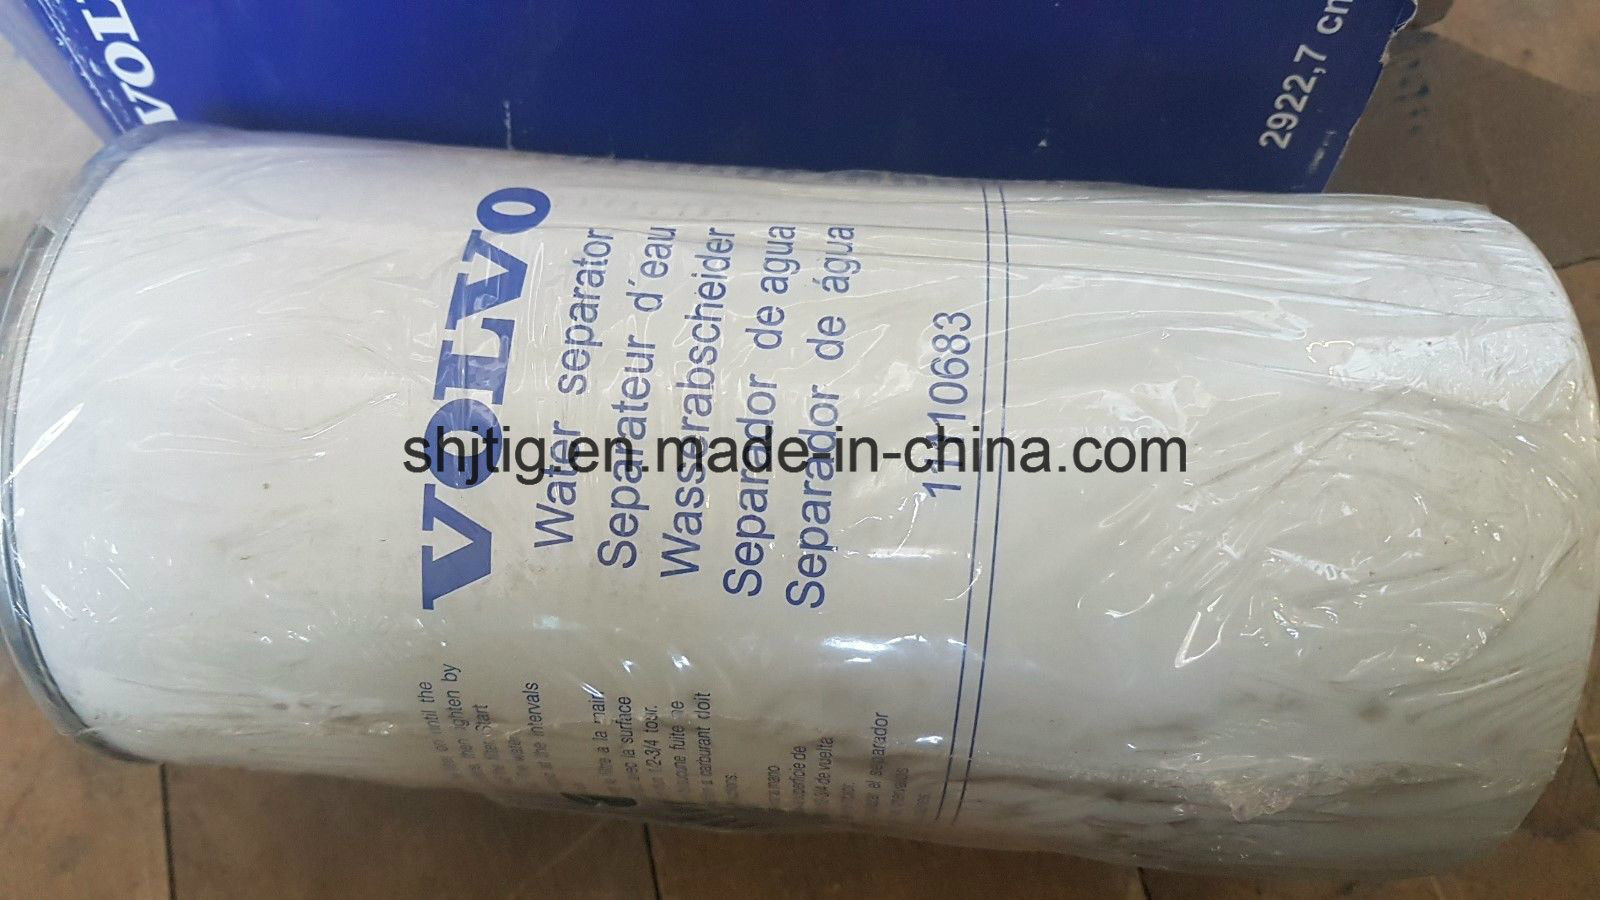 China Volvo11110683 Fuel Filter Spin On For Mercedes Benz Renault Wrap Trucks Bomag Paving Equipmen Oil